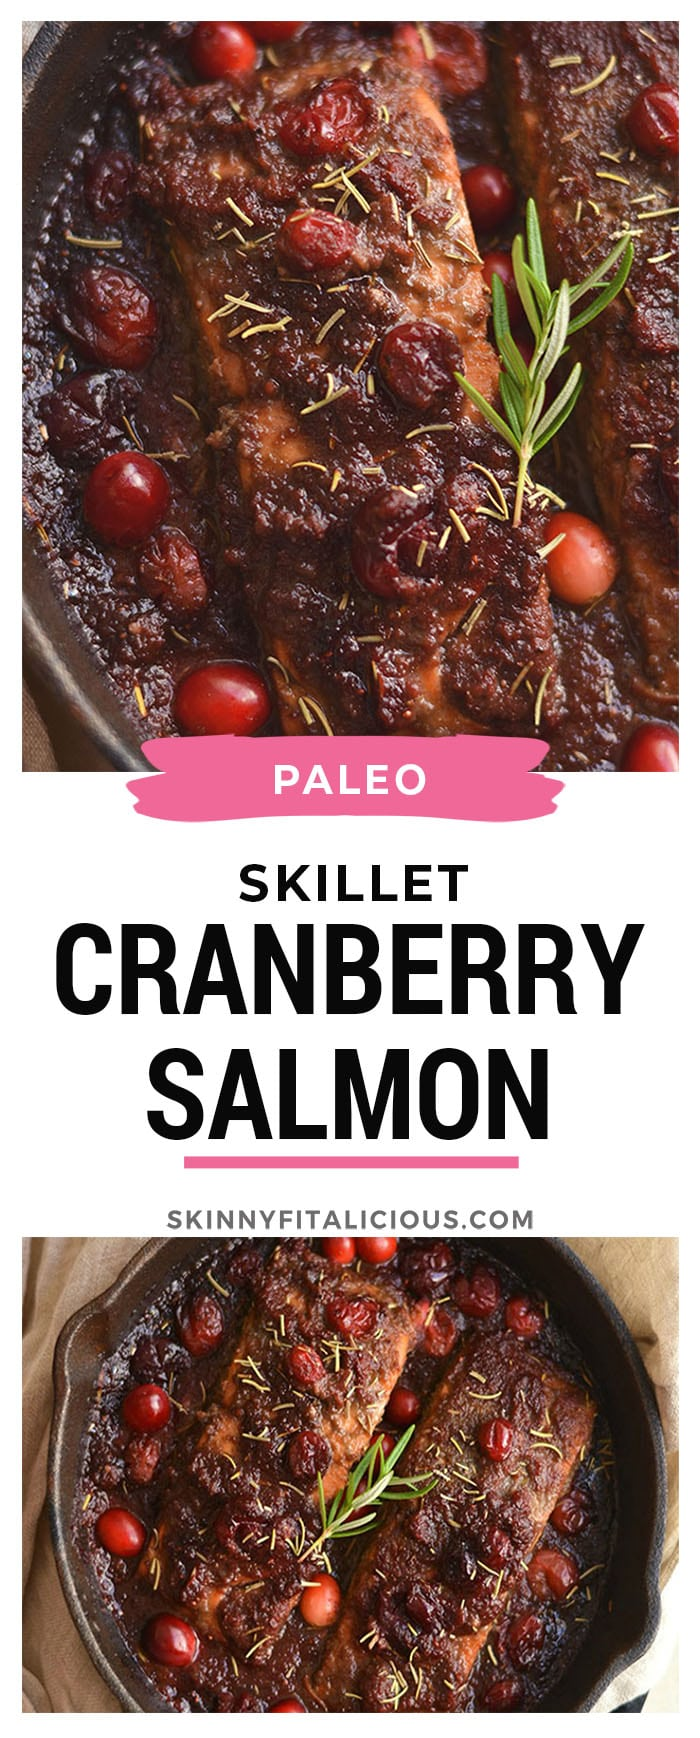 Skillet Cranberry Balsamic Salmon!This ONE skillet roastedbalsamic salmon infused with maple syrup and cranberries is a simple 30 minute sweet and pungent dinner. Perfect for holiday and winter dinner menus! Paleo + Gluten Free + Low Calorie!